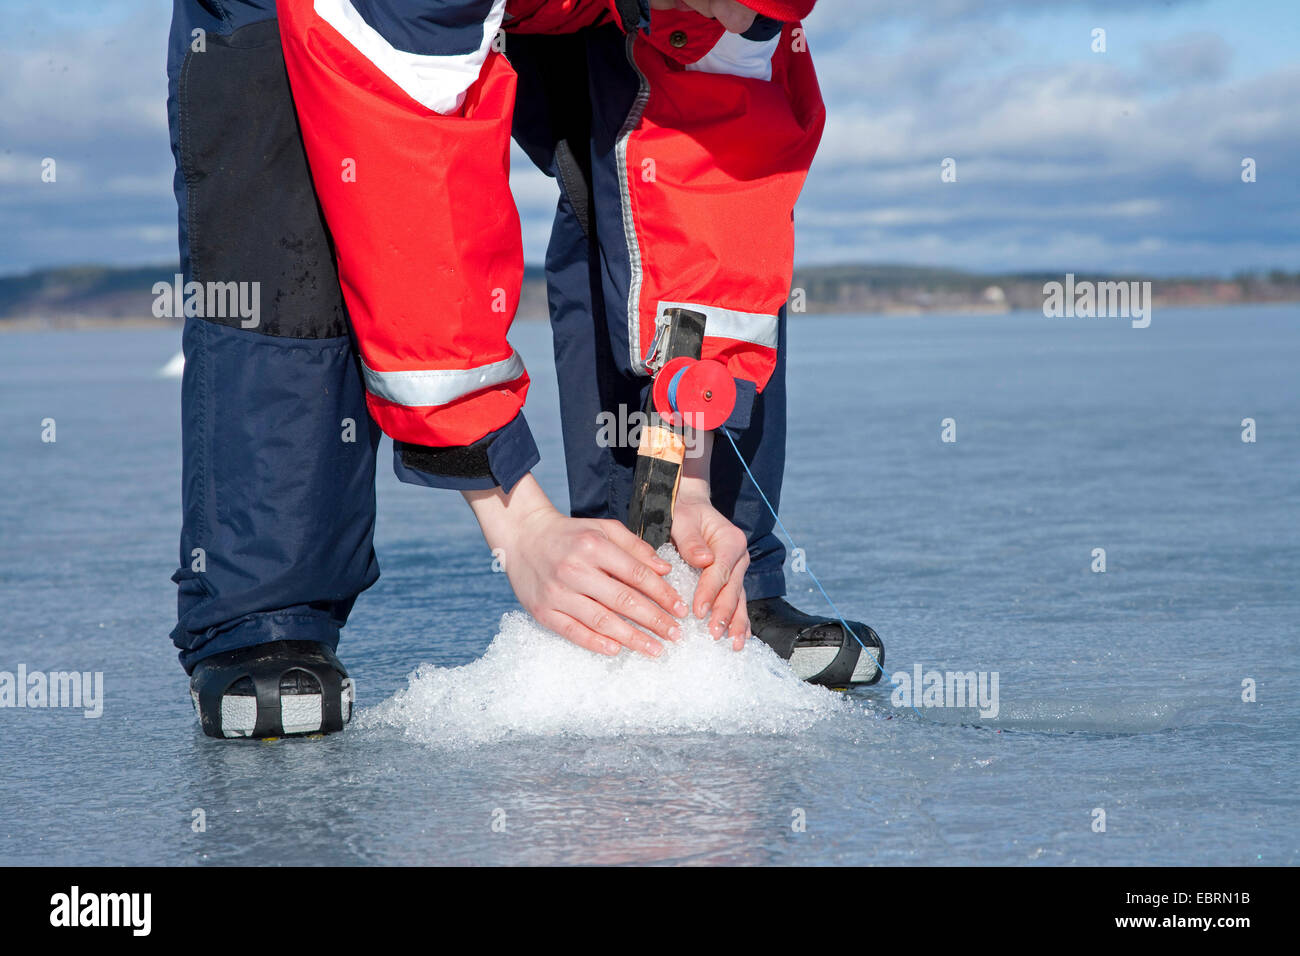 Ice fisher fixing the fishing rod on frozen lake, Sweden - Stock Image